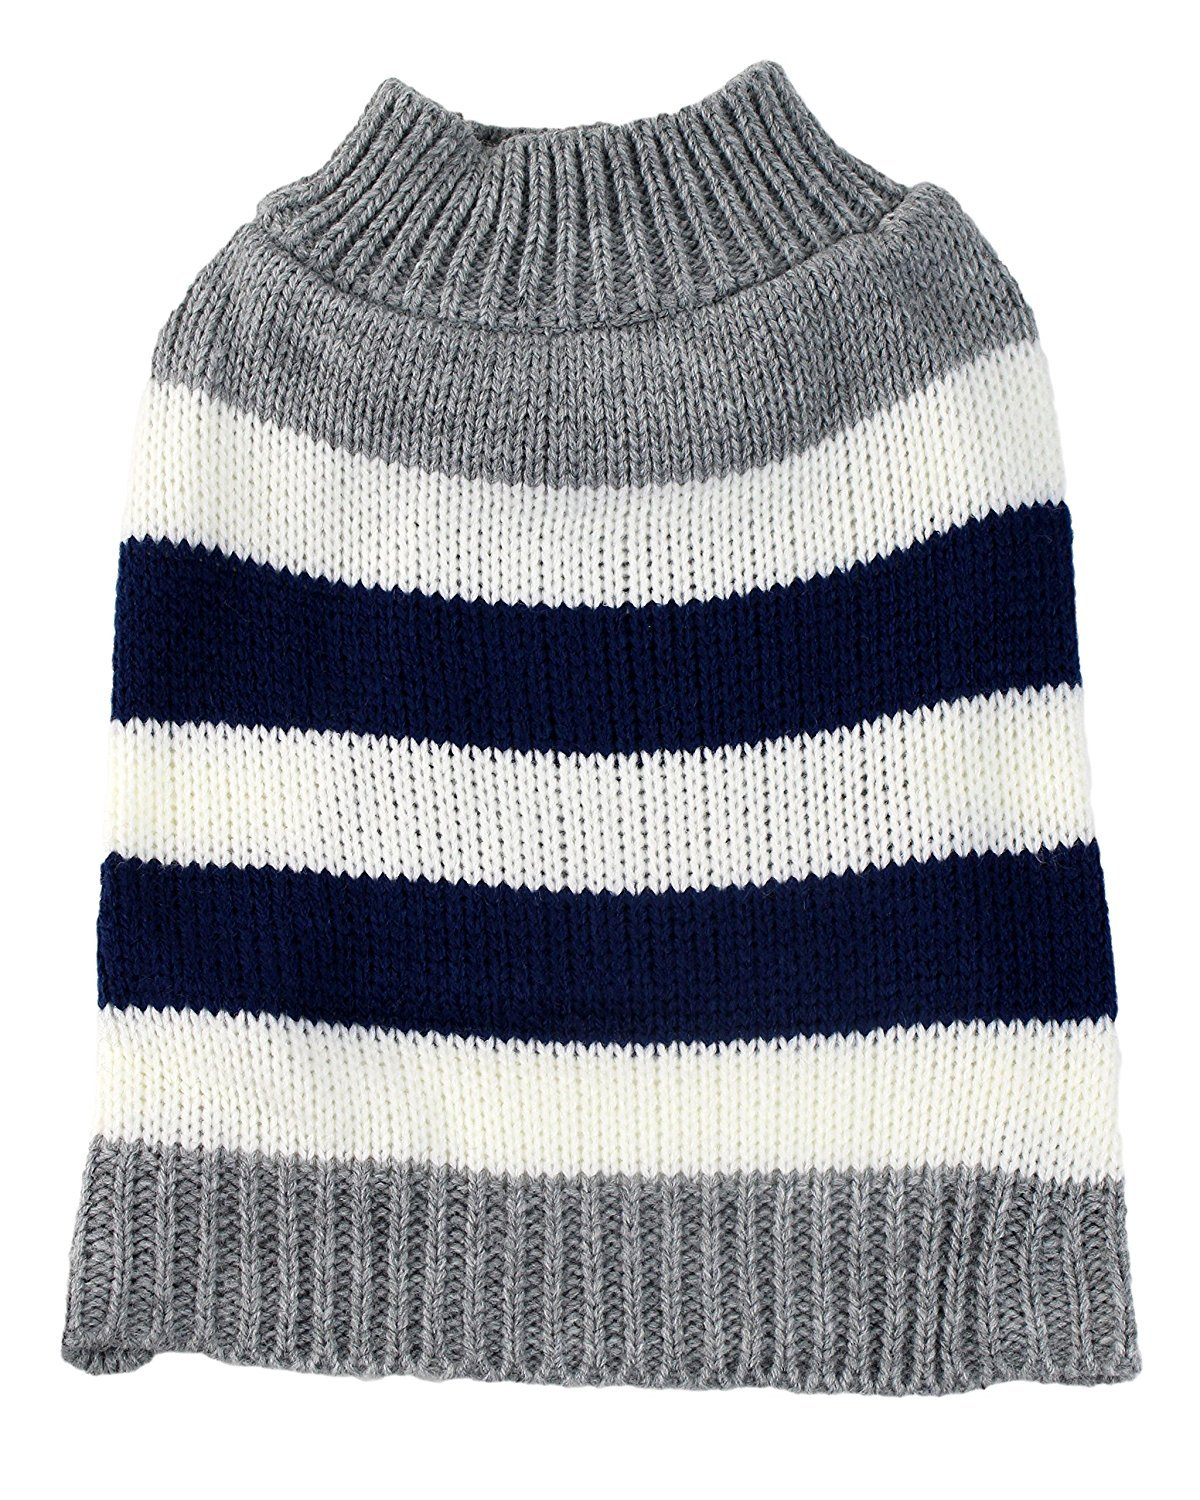 X-Large Gray Striped Colorblock Dog Sweater by Midlee fits 22'' Back Length